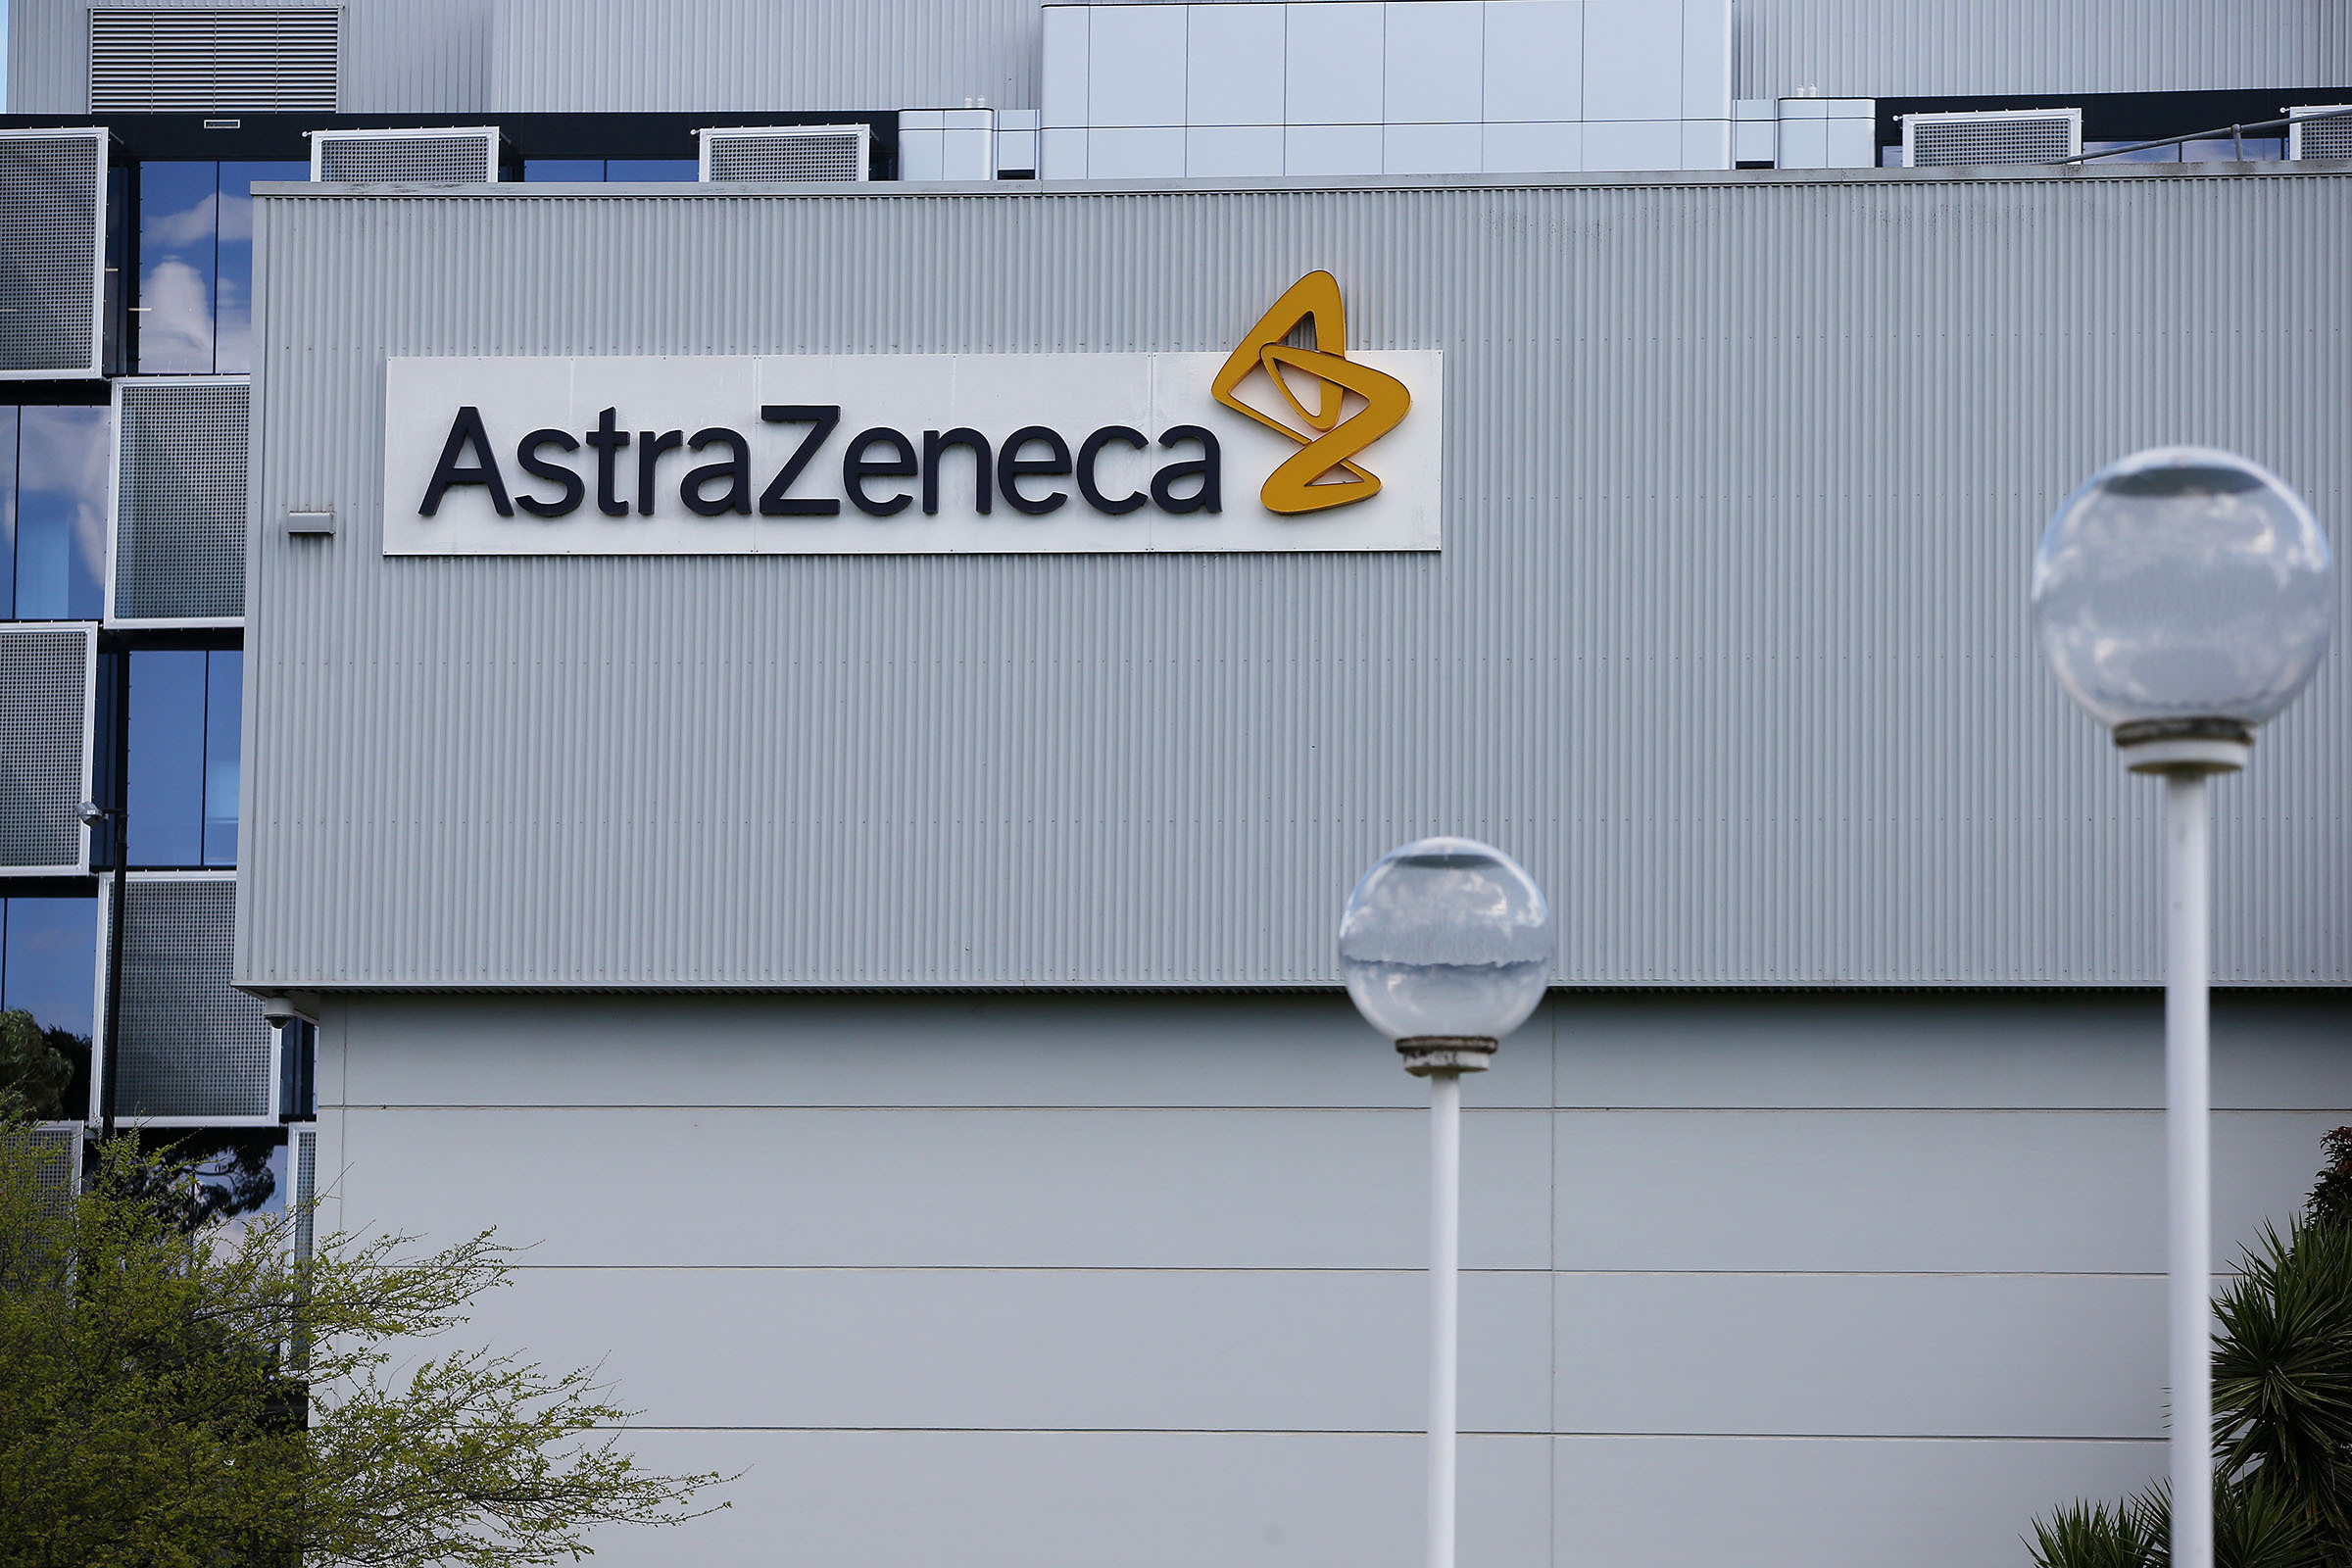 A general view of AstraZeneca is seen during Prime Minister Scott Morrison's visit on August 19 in Sydney, Australia.